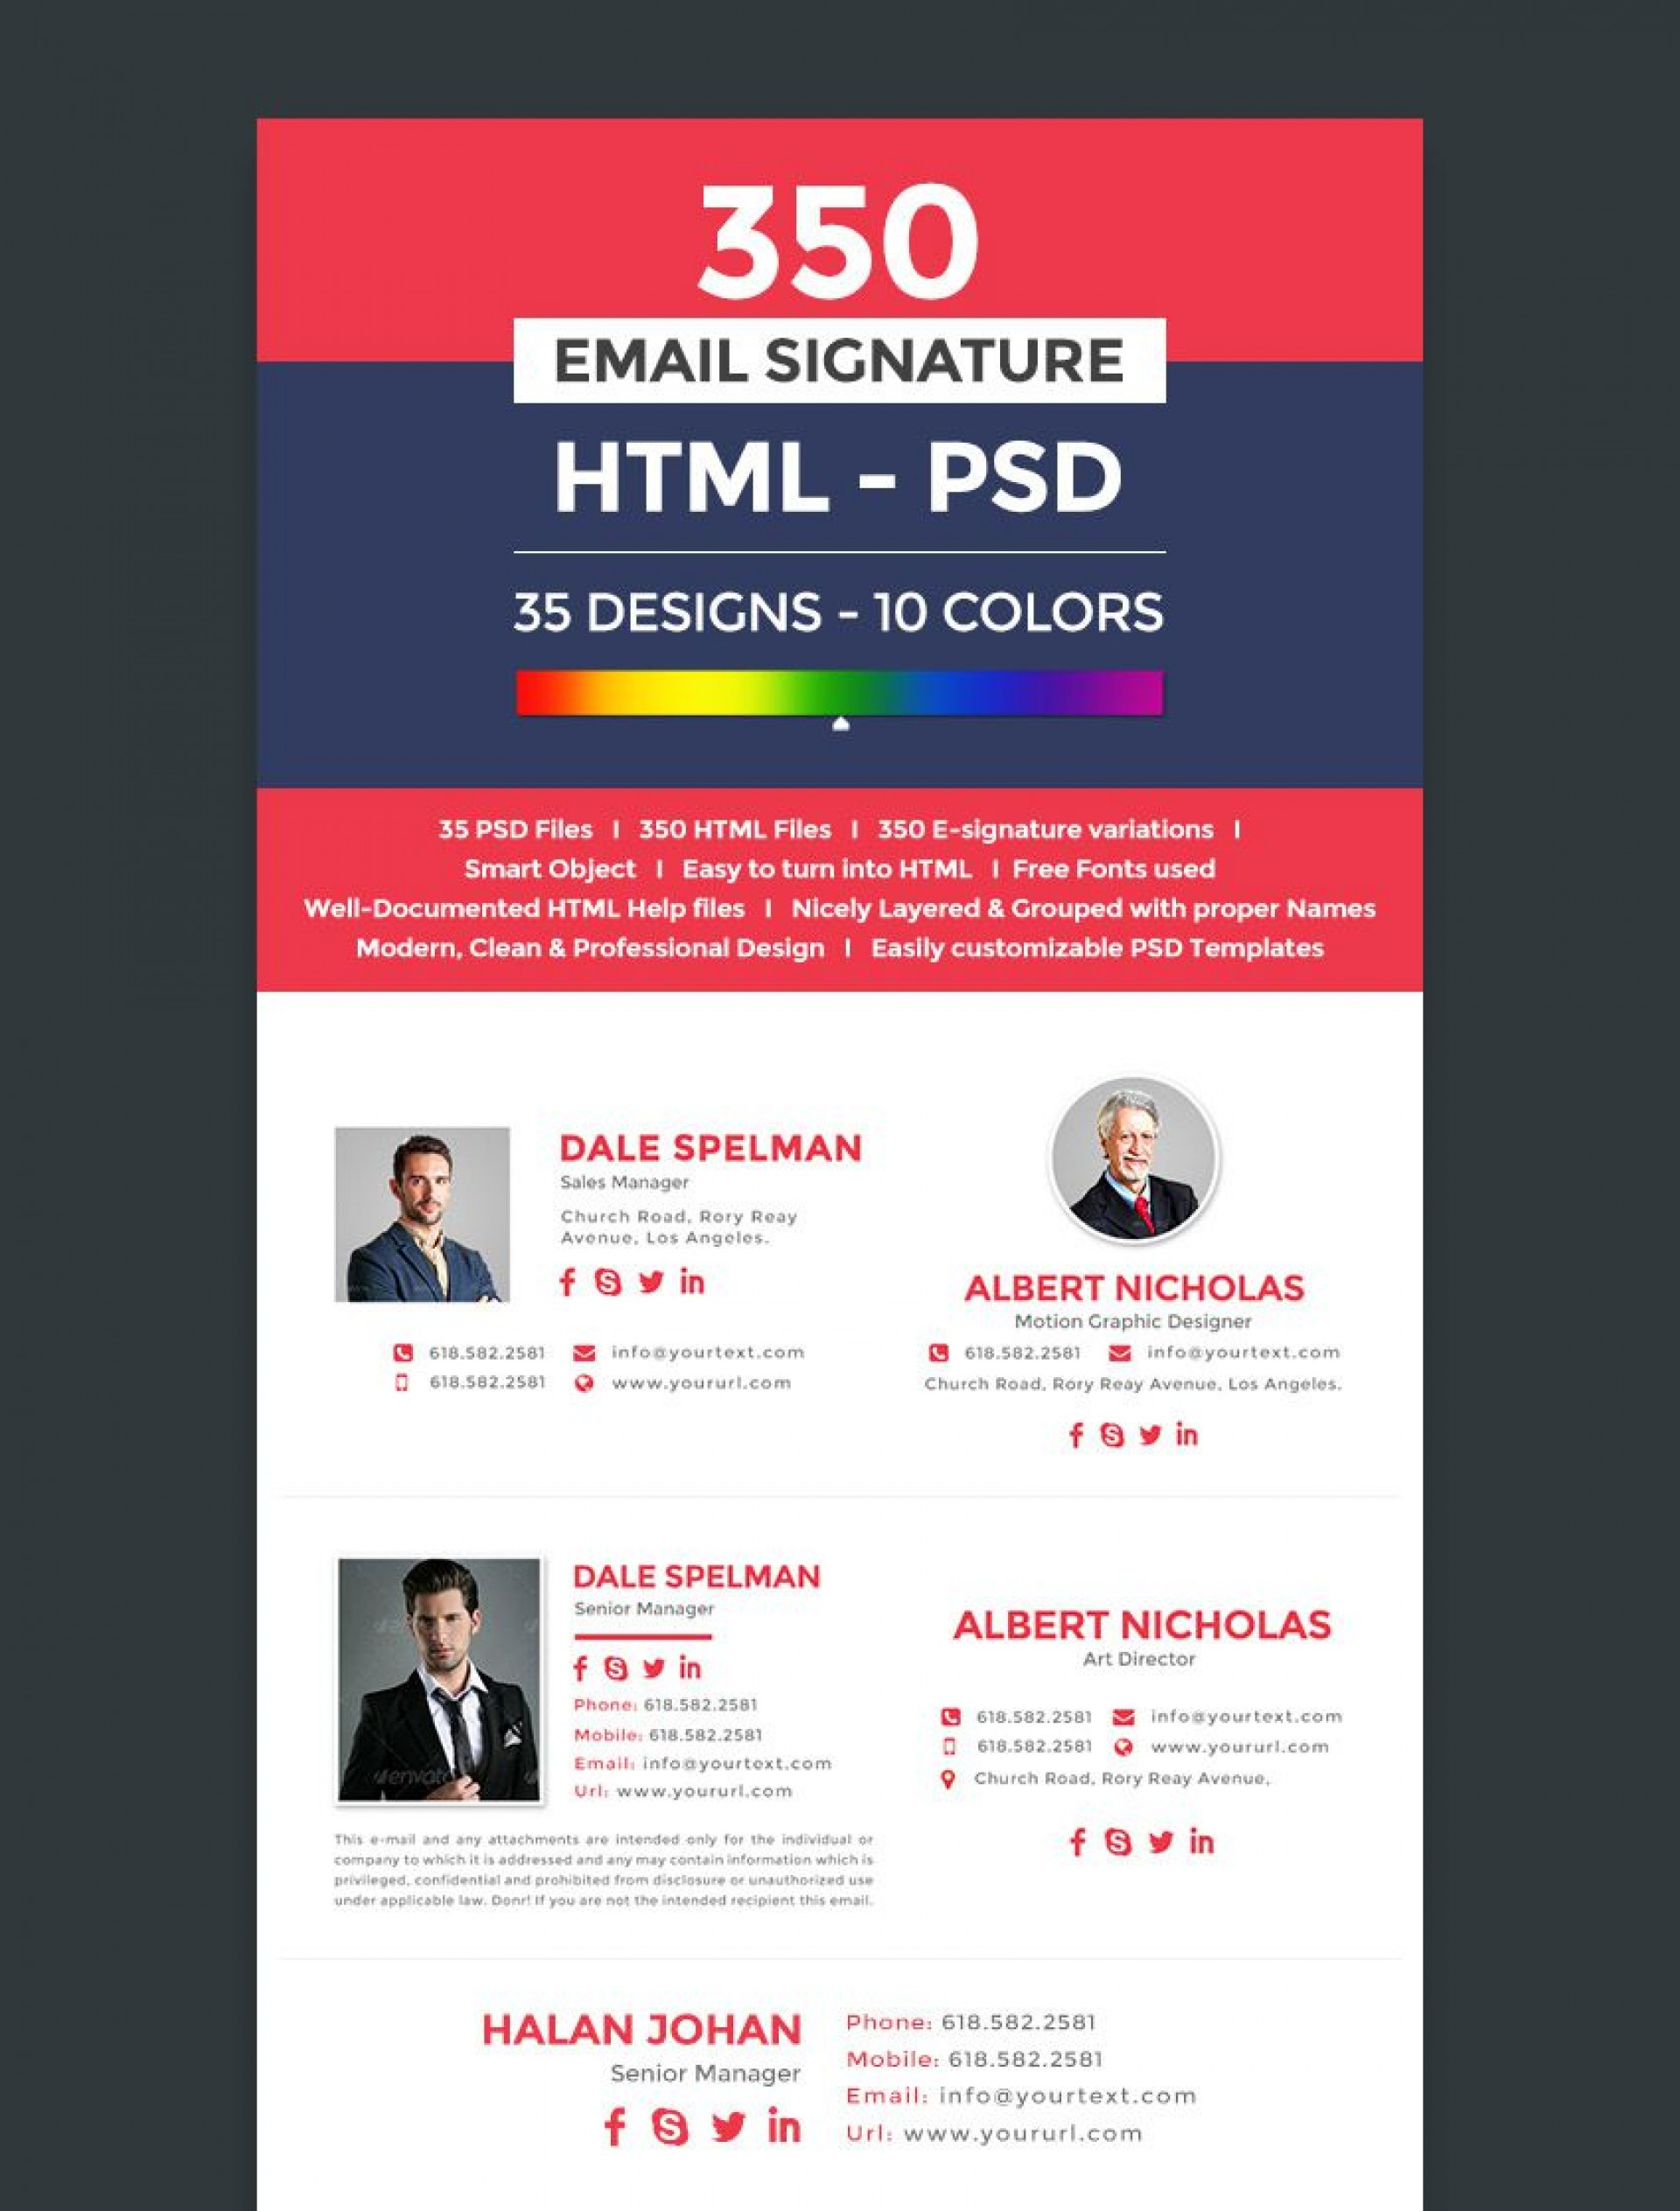 006 Fearsome Html Email Signature Template Highest Quality  Logo Thunderbird Generator1920